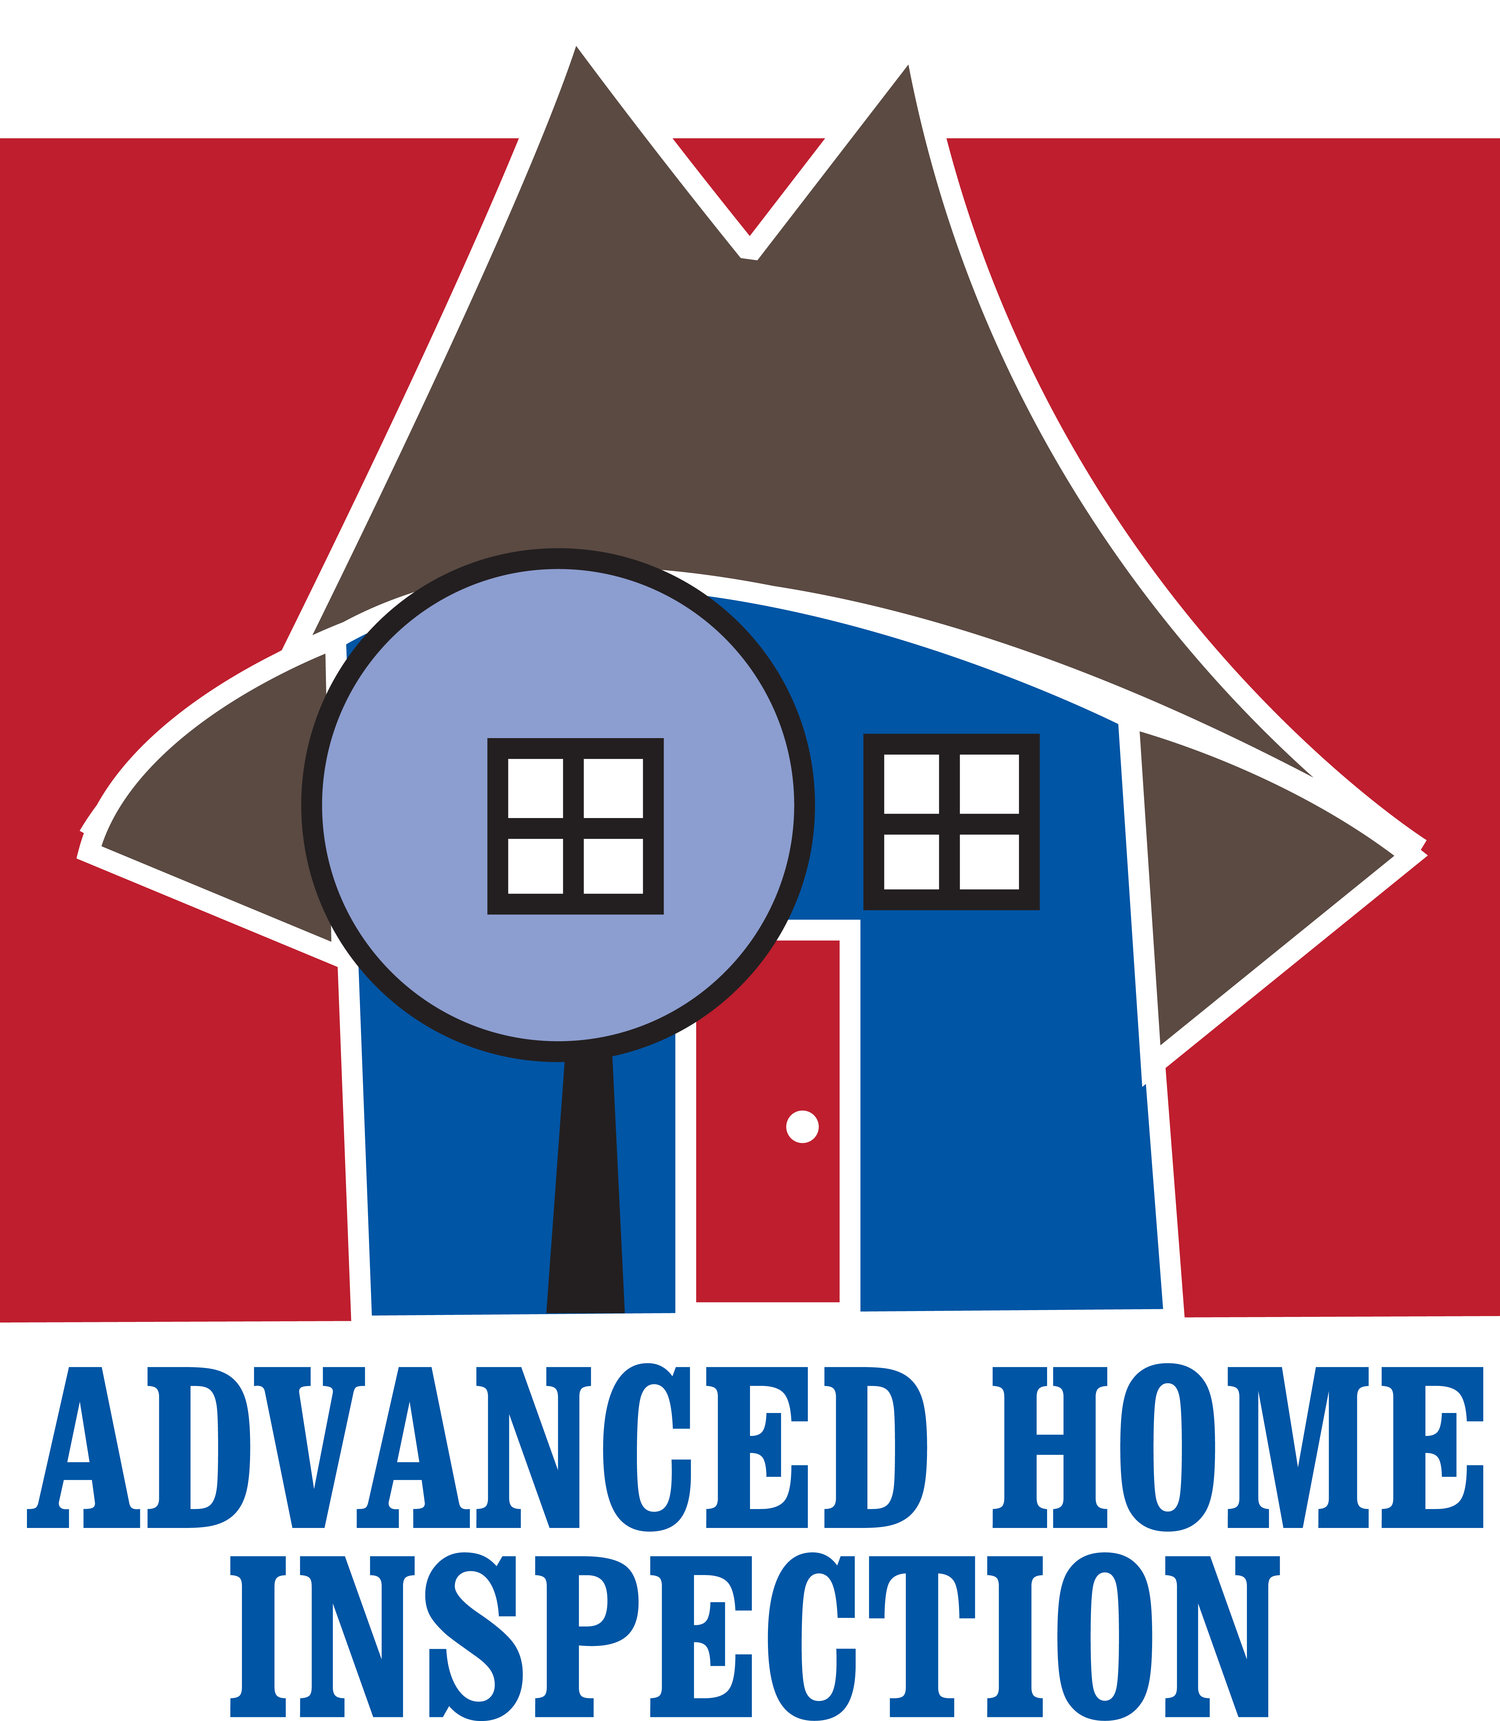 Advanced Home Inspection